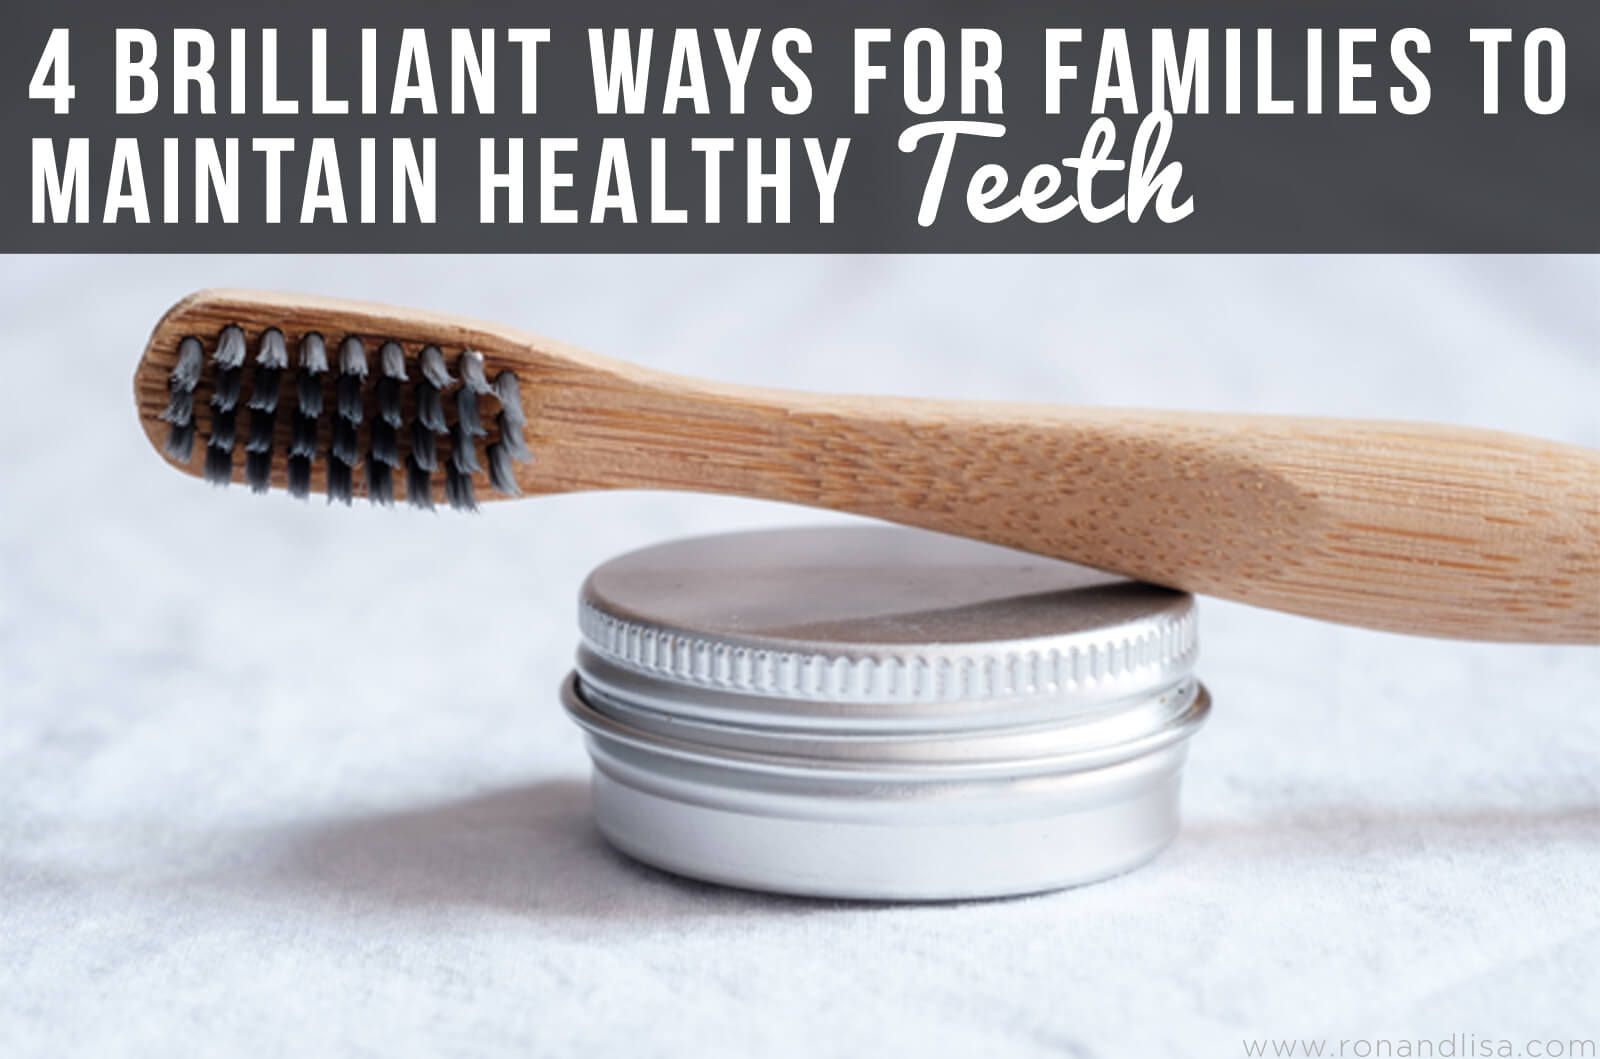 4 Brilliant Ways for Families to Maintain Healthy Teeth